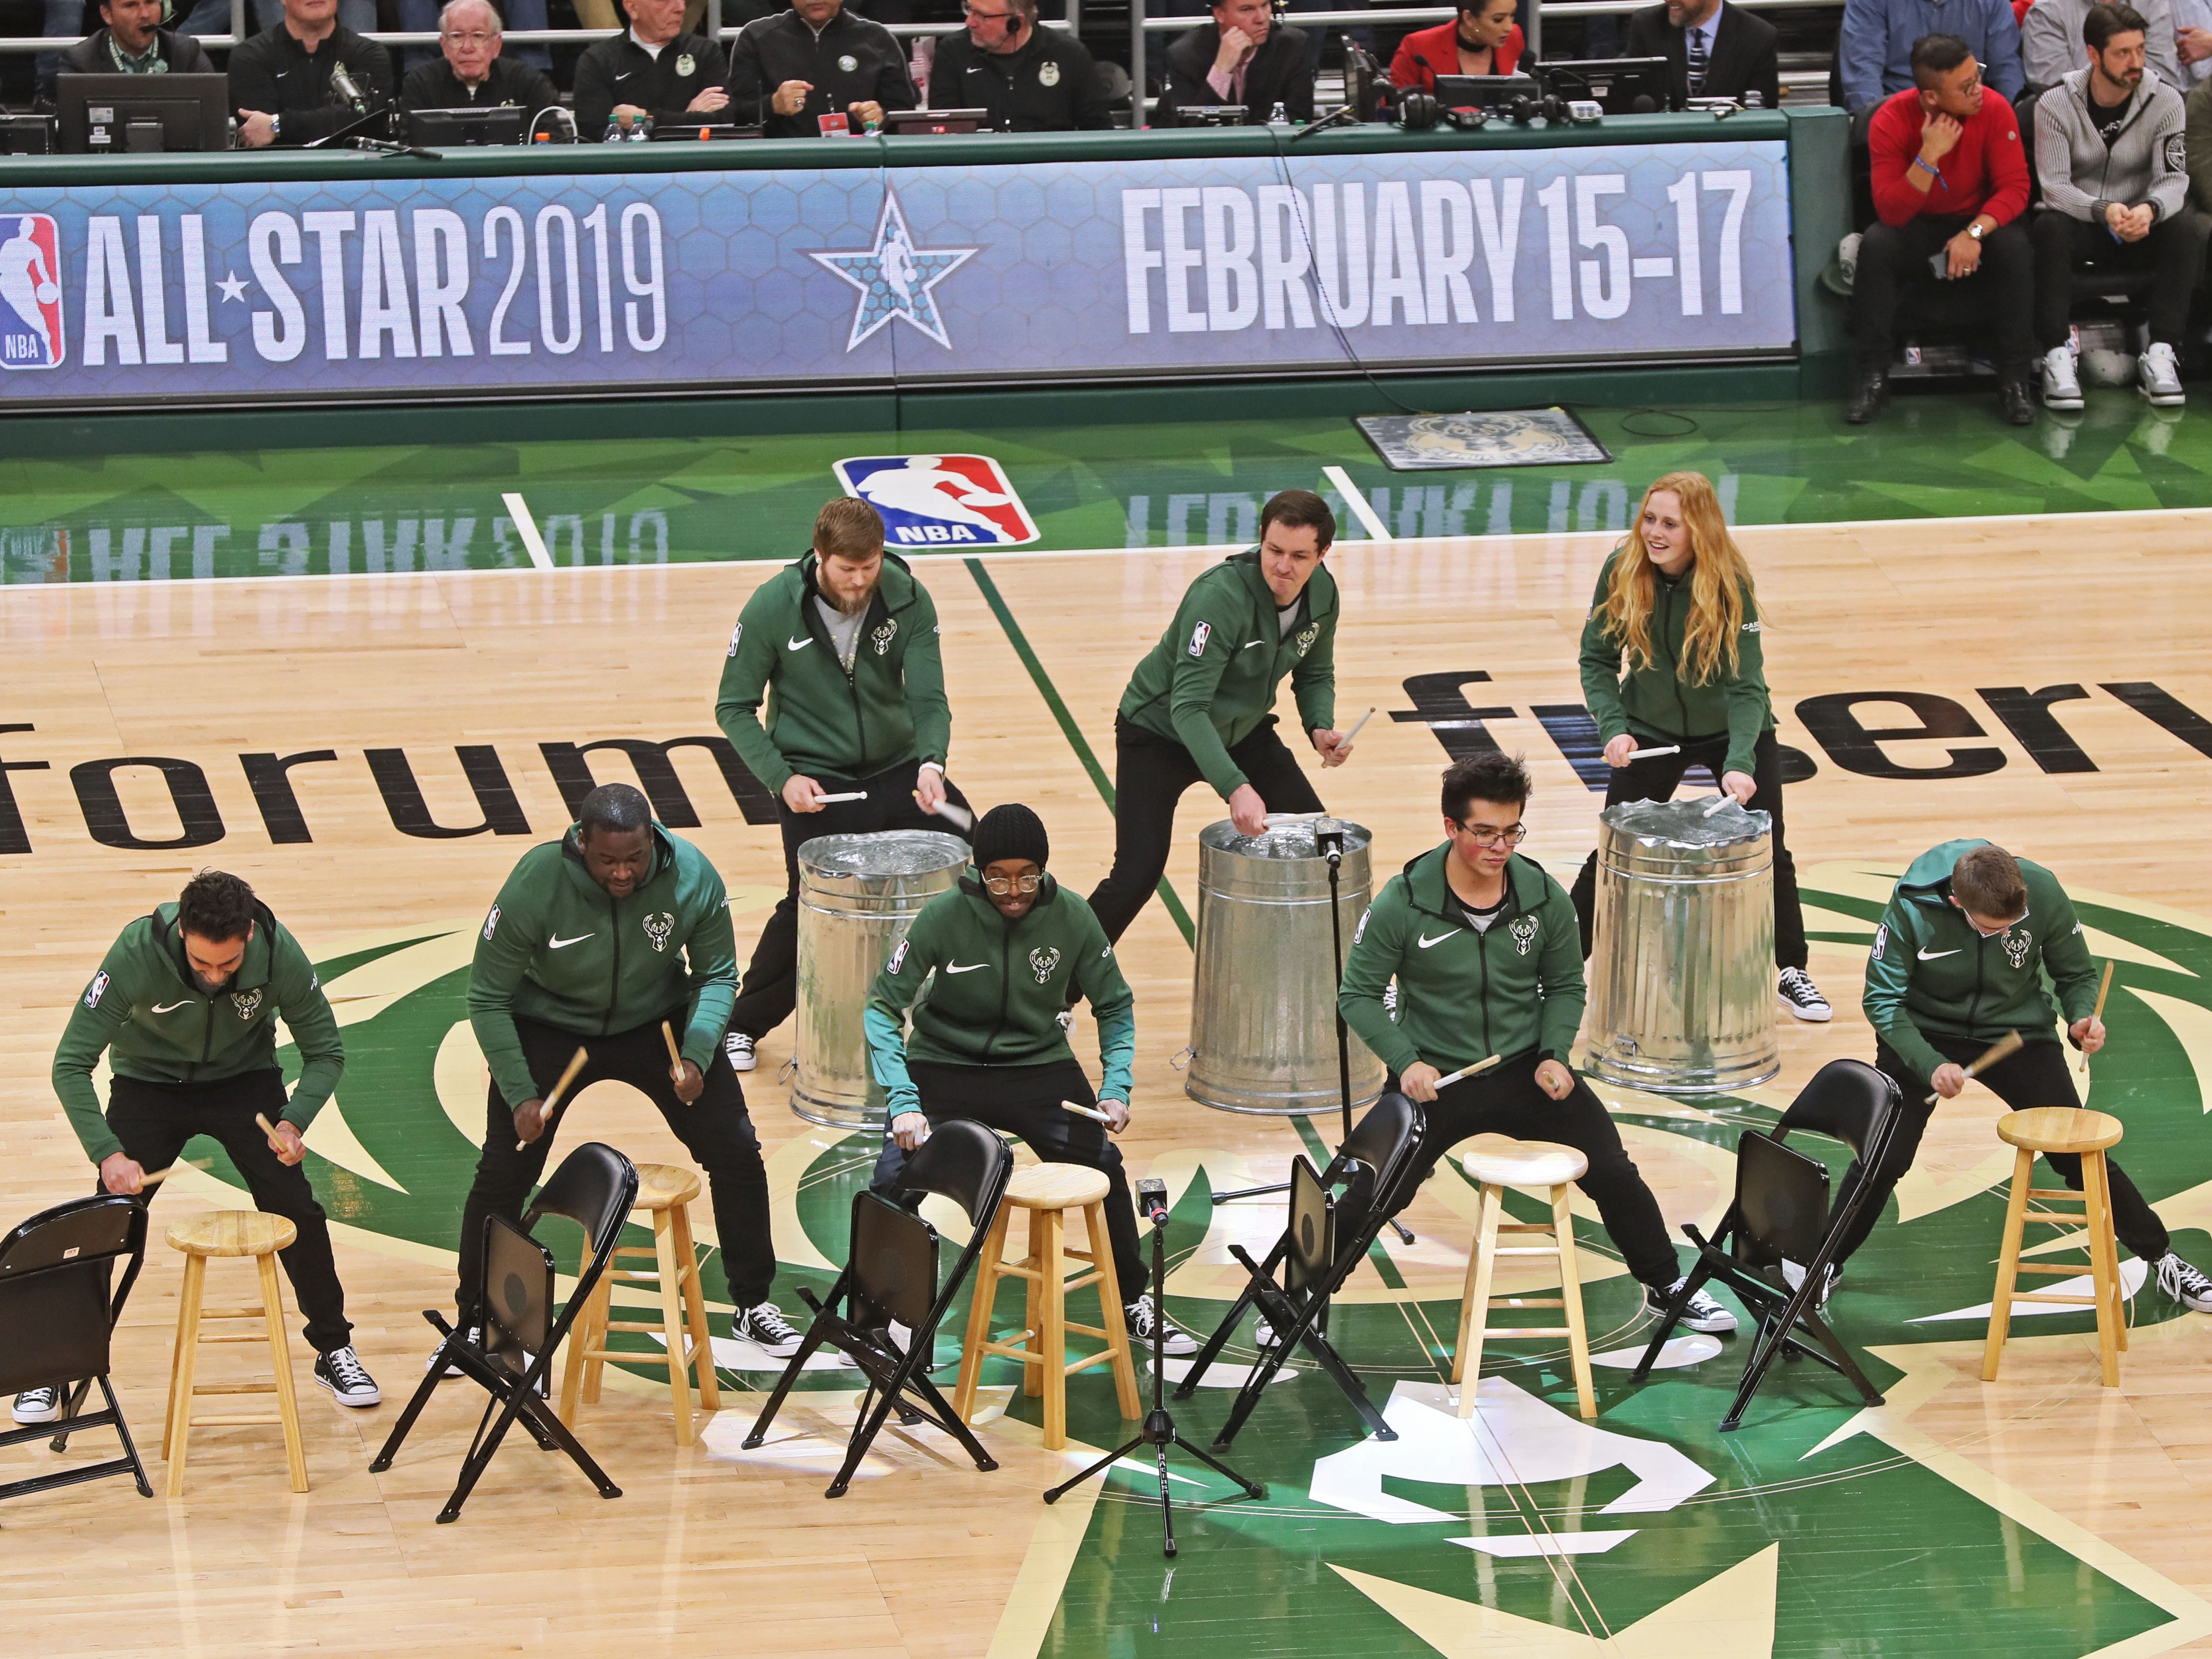 Members of the Bucks Beats presented by Cascio Music drum on stools and trash cans.